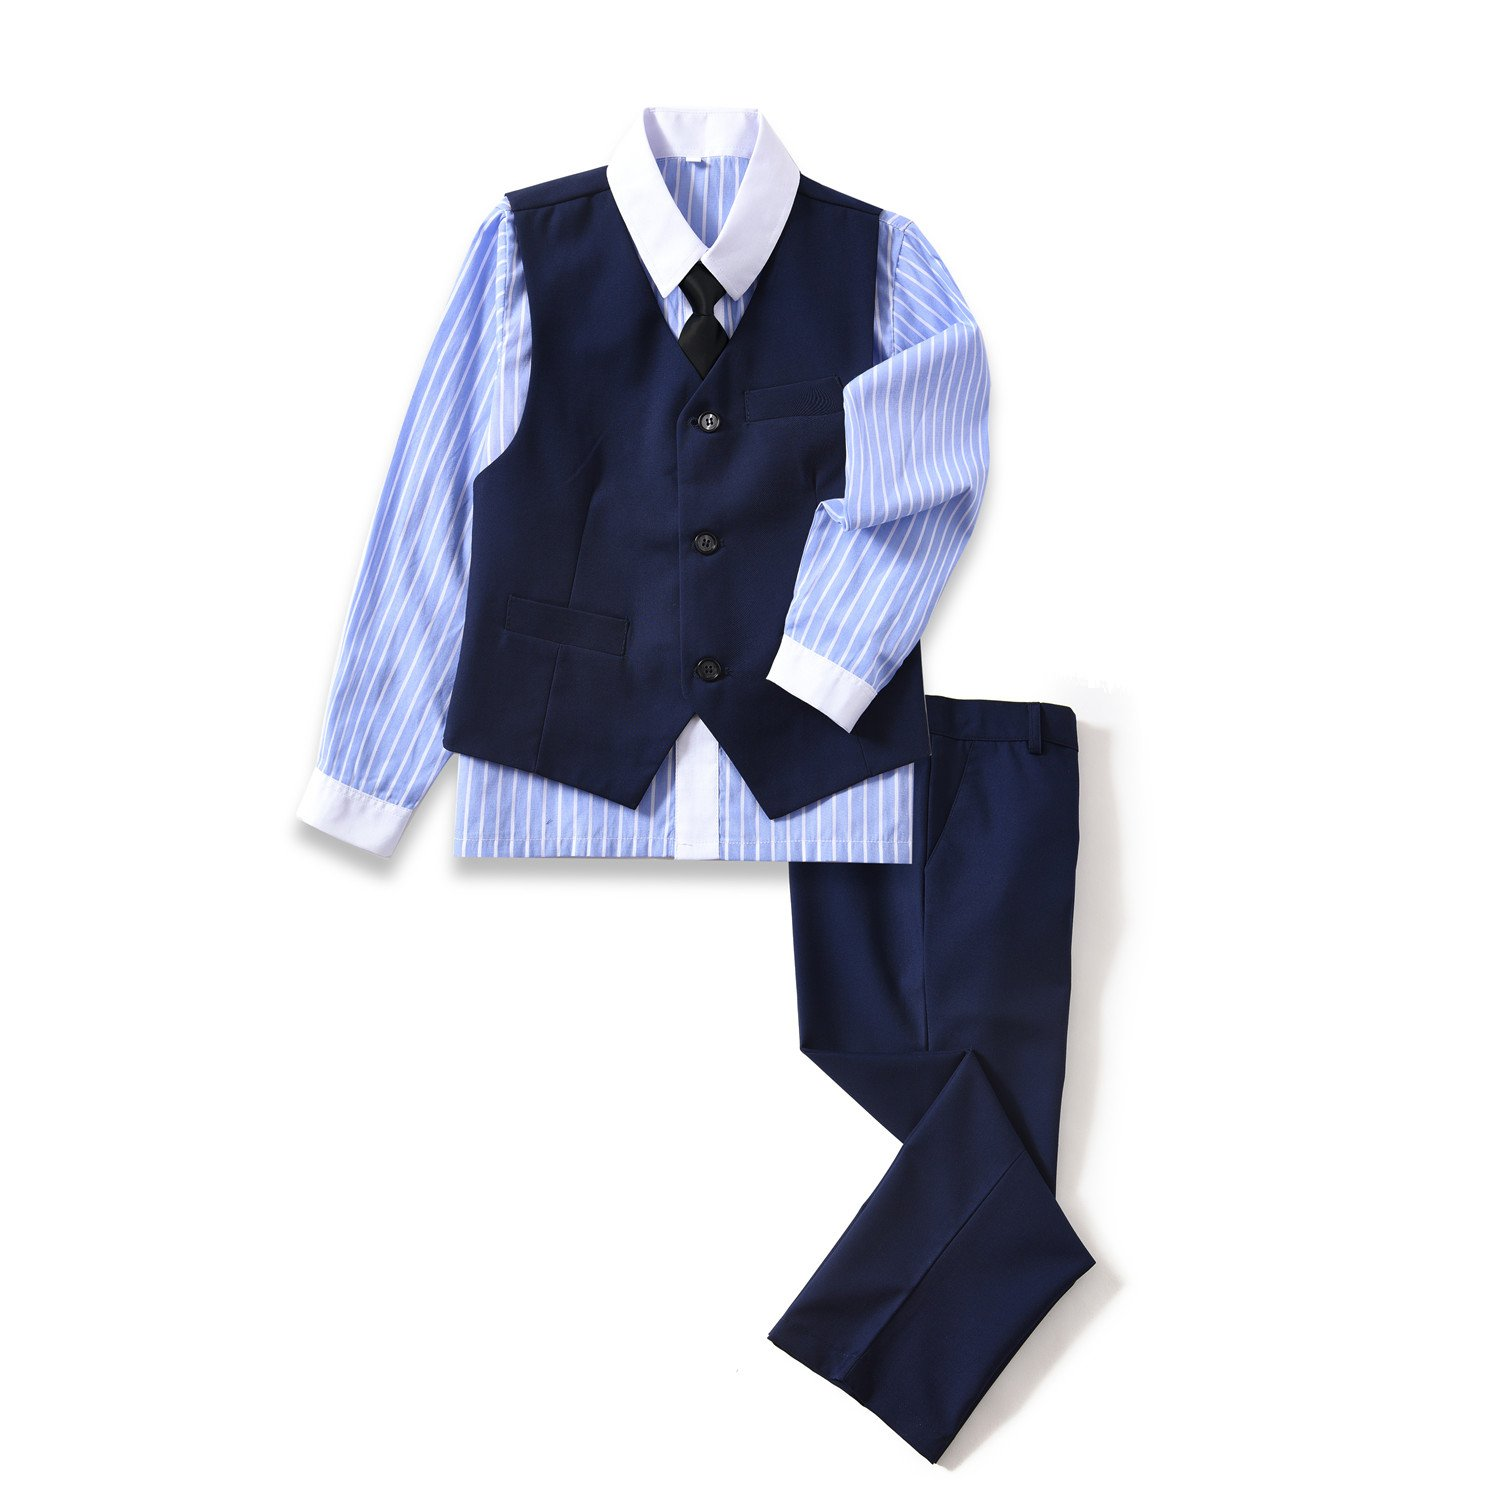 Yuanlu 4 Piece Boys Formal Dresswear Vest Set Suits Outfits Blue Size 5